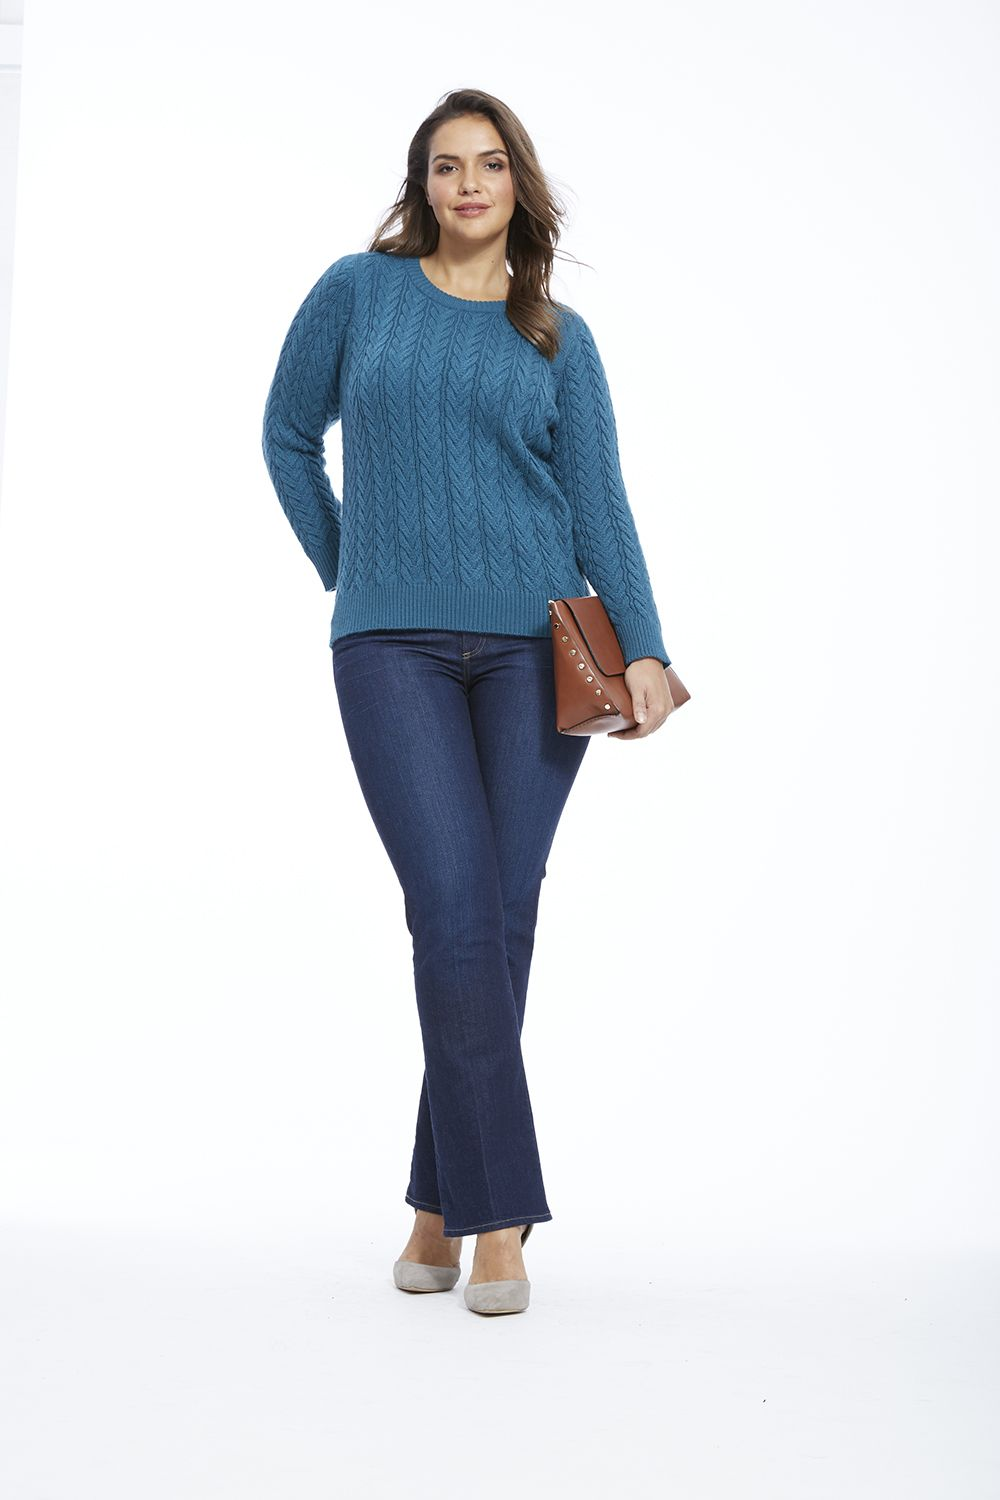 Cable-knit Sweater in Turquoise by Lima  Available in sizes 0X-5X